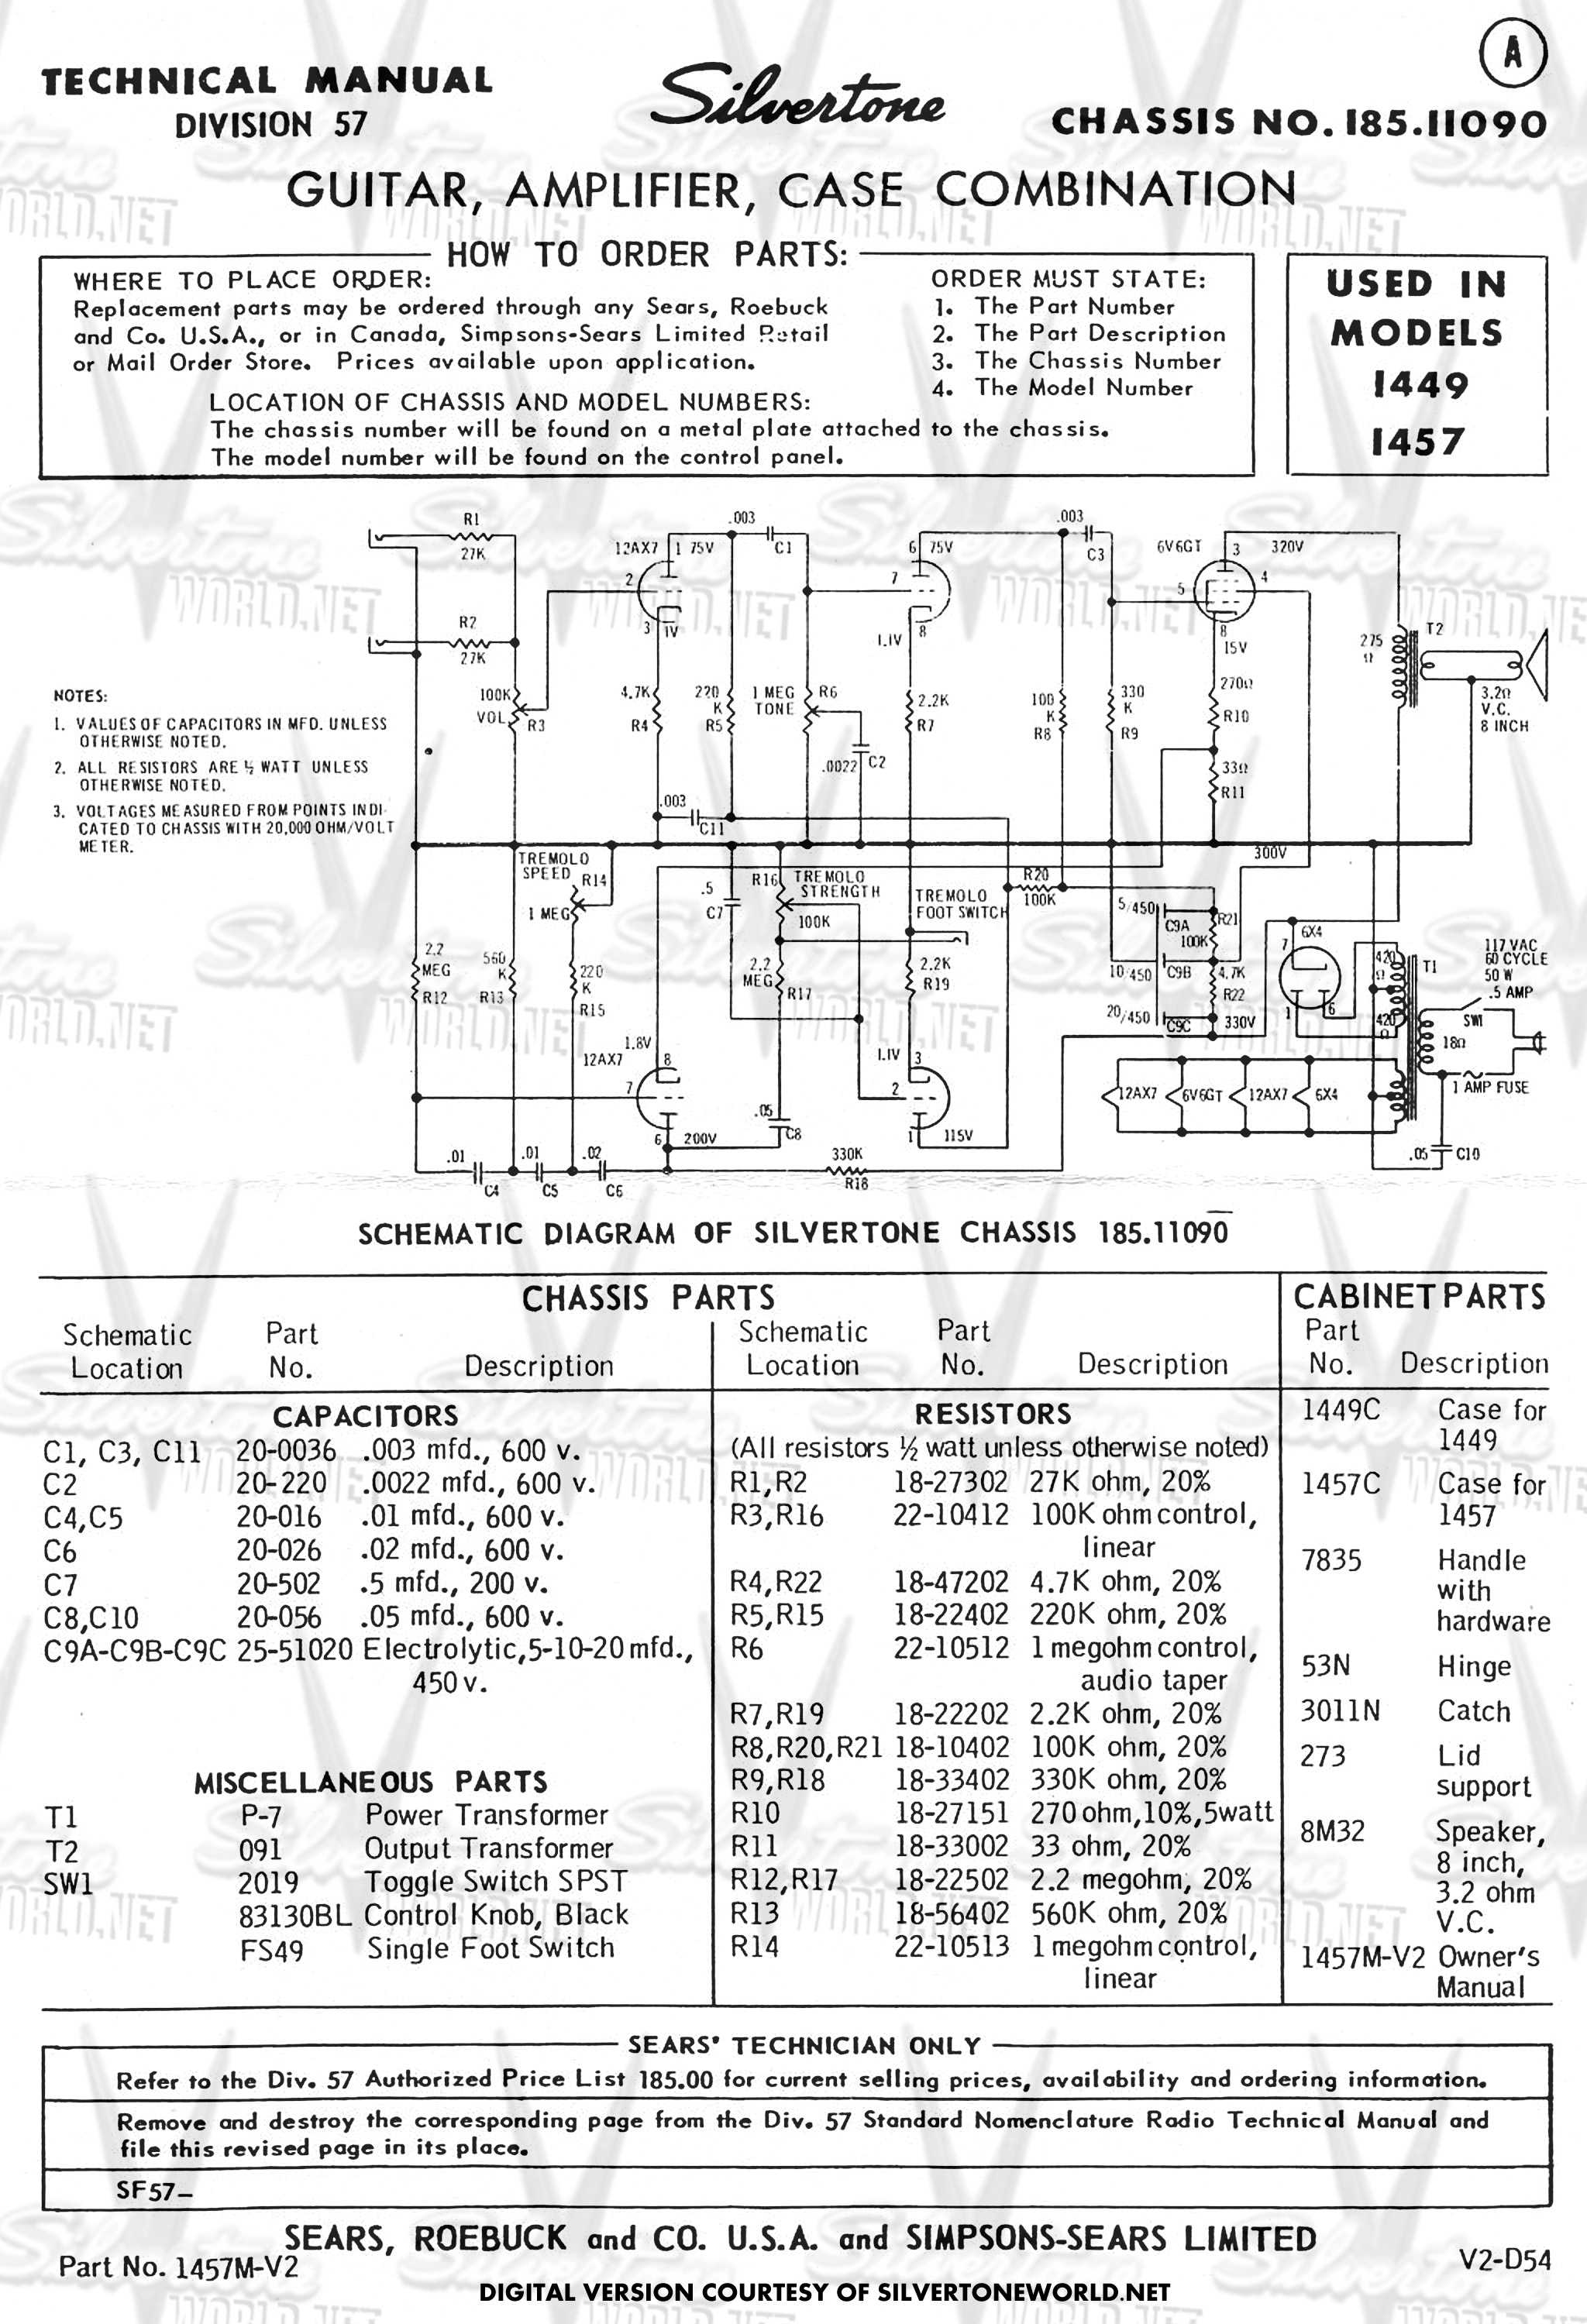 silvertone world division 57 schematics, manuals and publications Jbl Wiring Diagram silvertone wiring diagram  #9 Pressure Switch Wiring Diagram